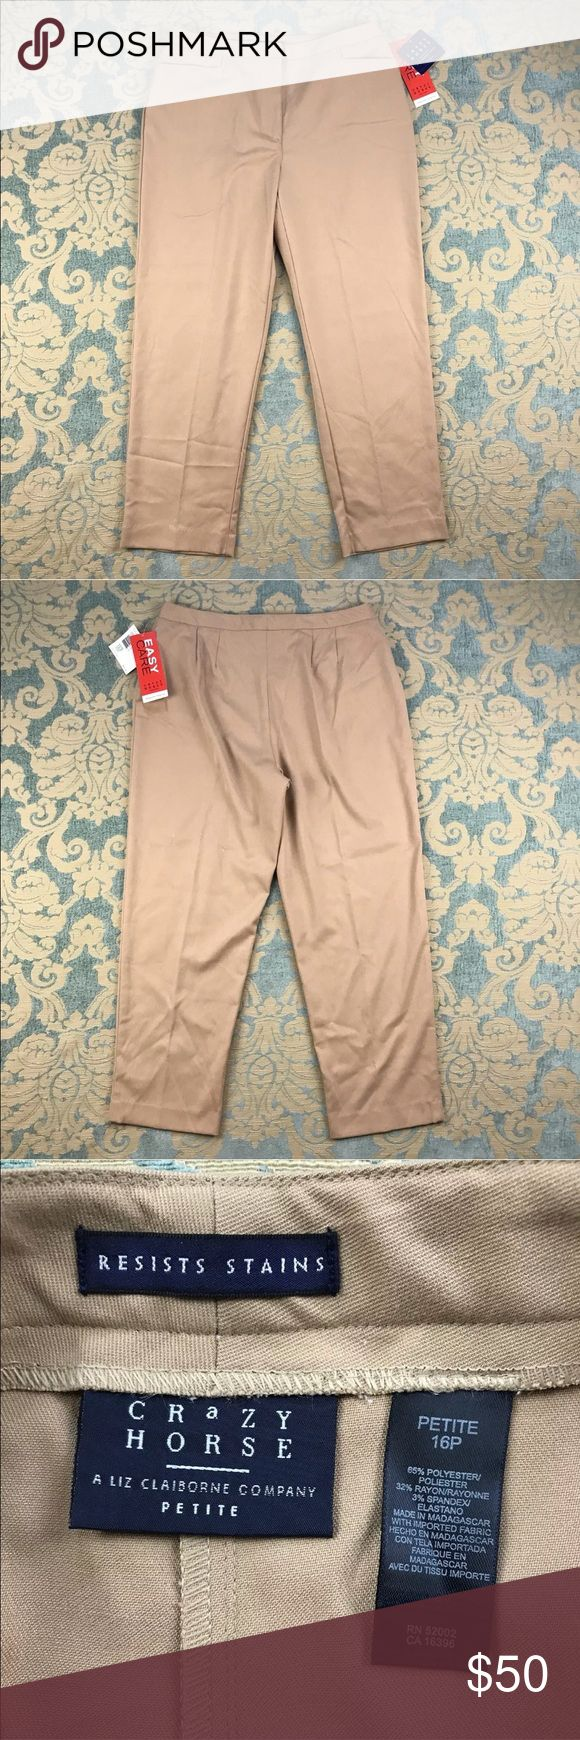 """Crazy Horse Beige Dress Pants 🦋 28"""" Inseam Crazy Horse Beige Dress Pants  Easy Care Resists Stains  Women's Petite Size: 16P  Material: 65% Polyester 32% Rayon 3% Spandex  Noflaws.  Measurements lying flat: Waist 16"""", Hips 23"""", Inseam 28"""", Front Rise 14"""", Back Rise 14"""".  Please, review pictures. You will get the item shown. Smoke & pet free home. Crazy Horse Pants Trousers"""